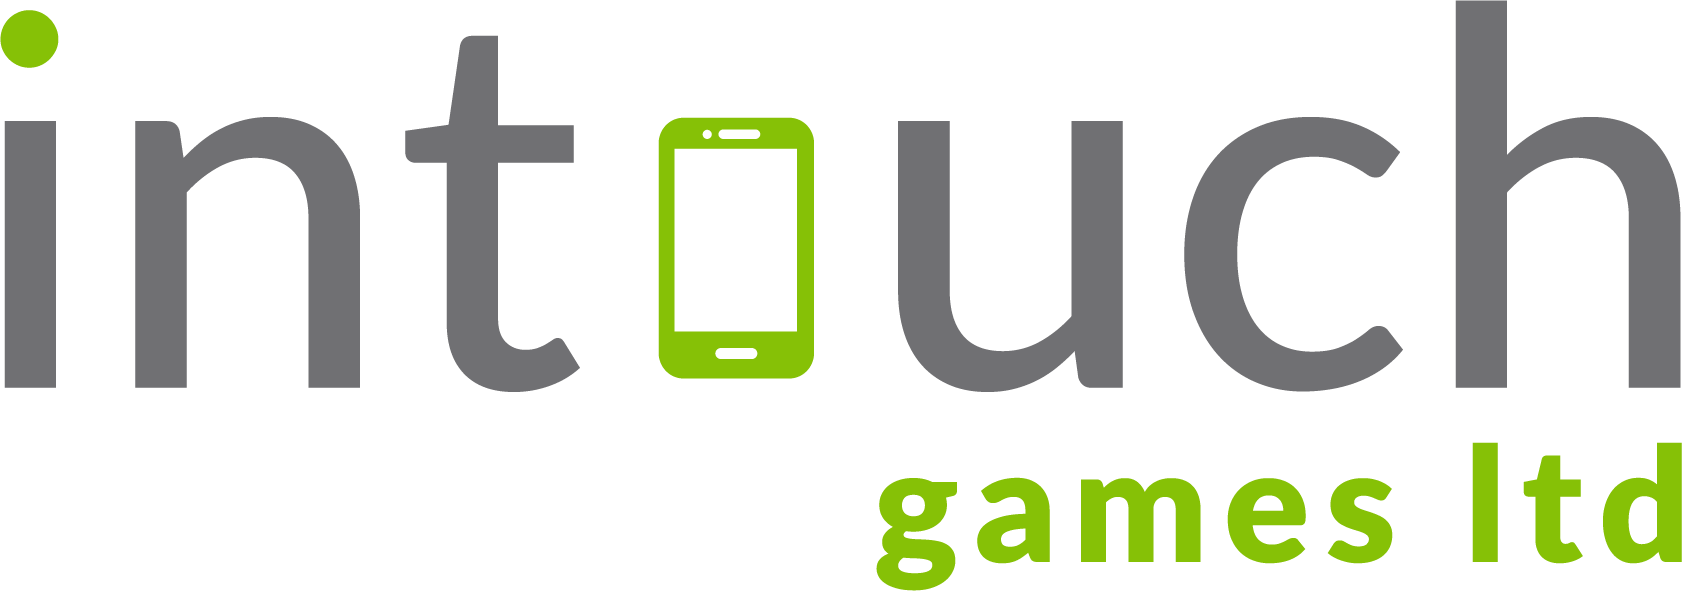 Intouch Games logo - recolours